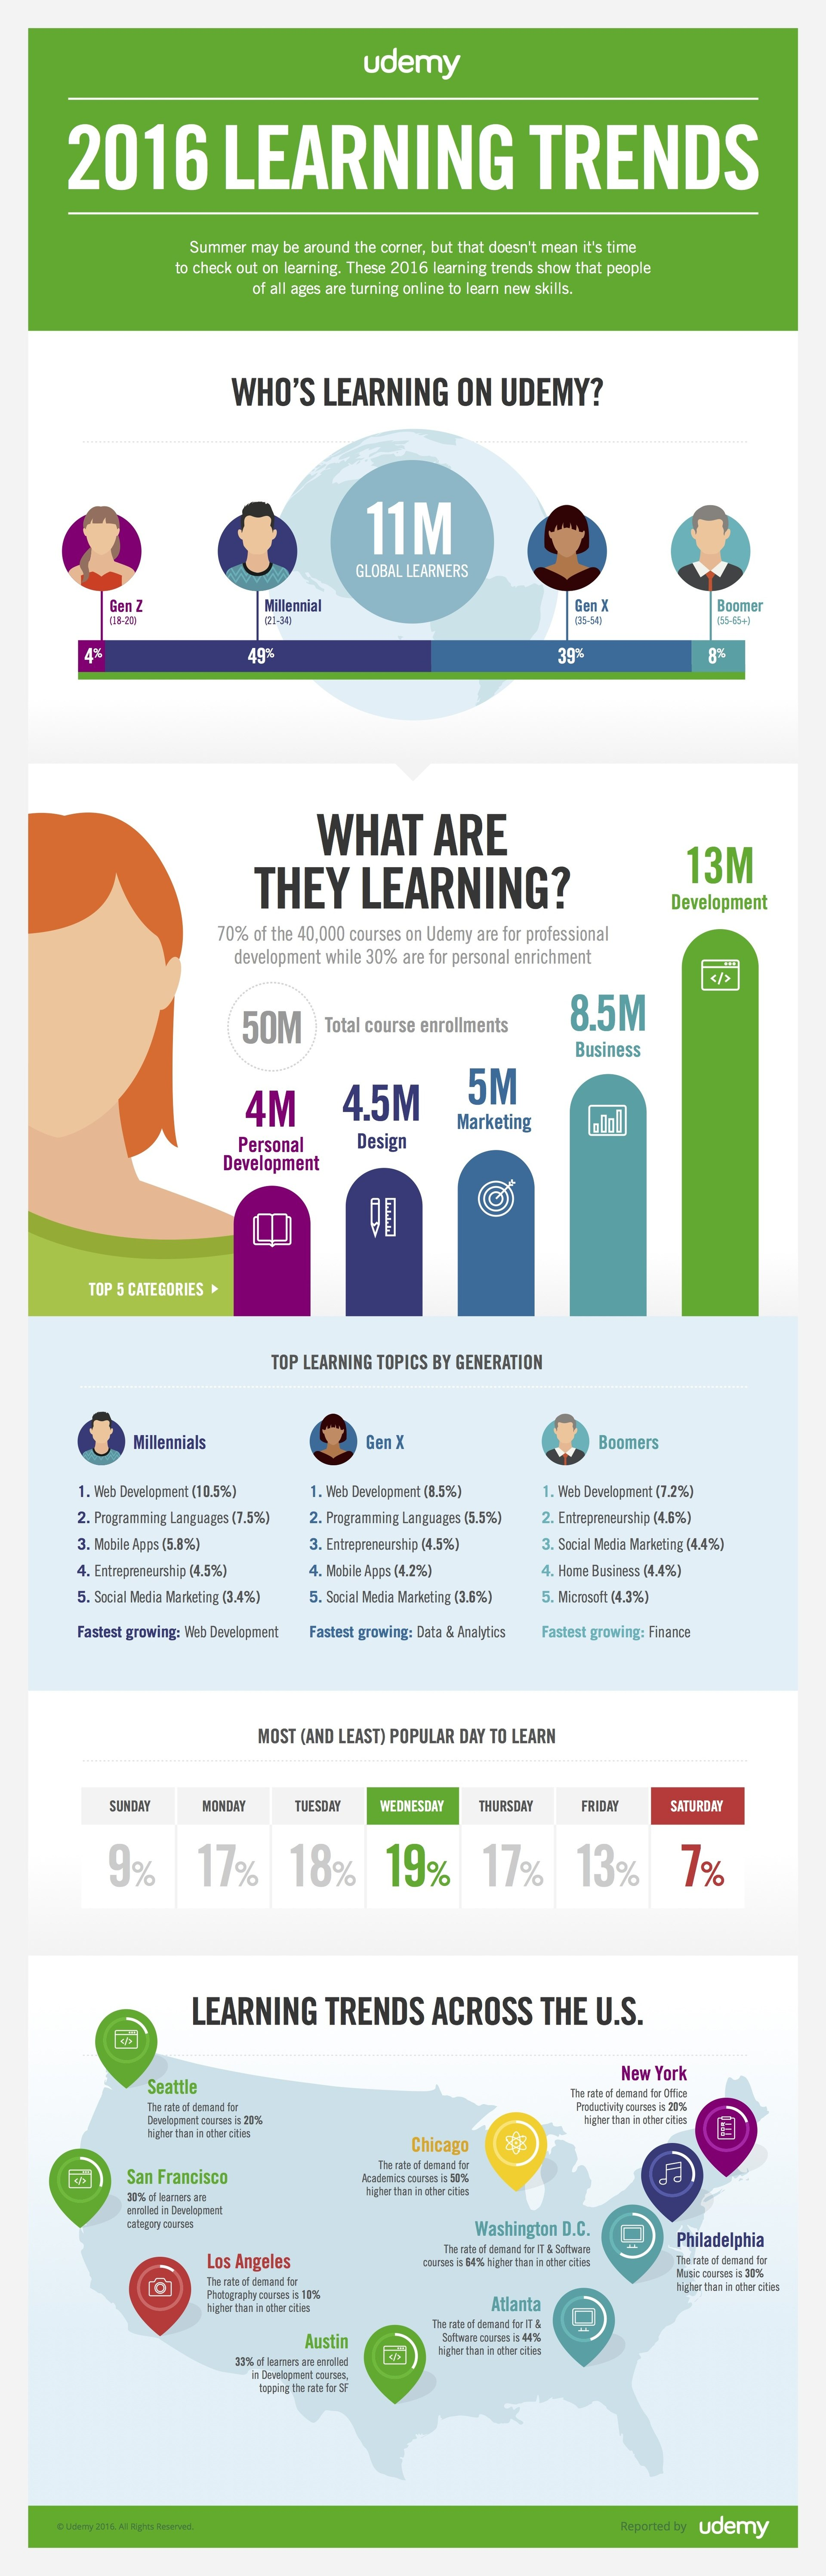 Double Vs Double Java The State Of Online Learning In 2016 Infographic E